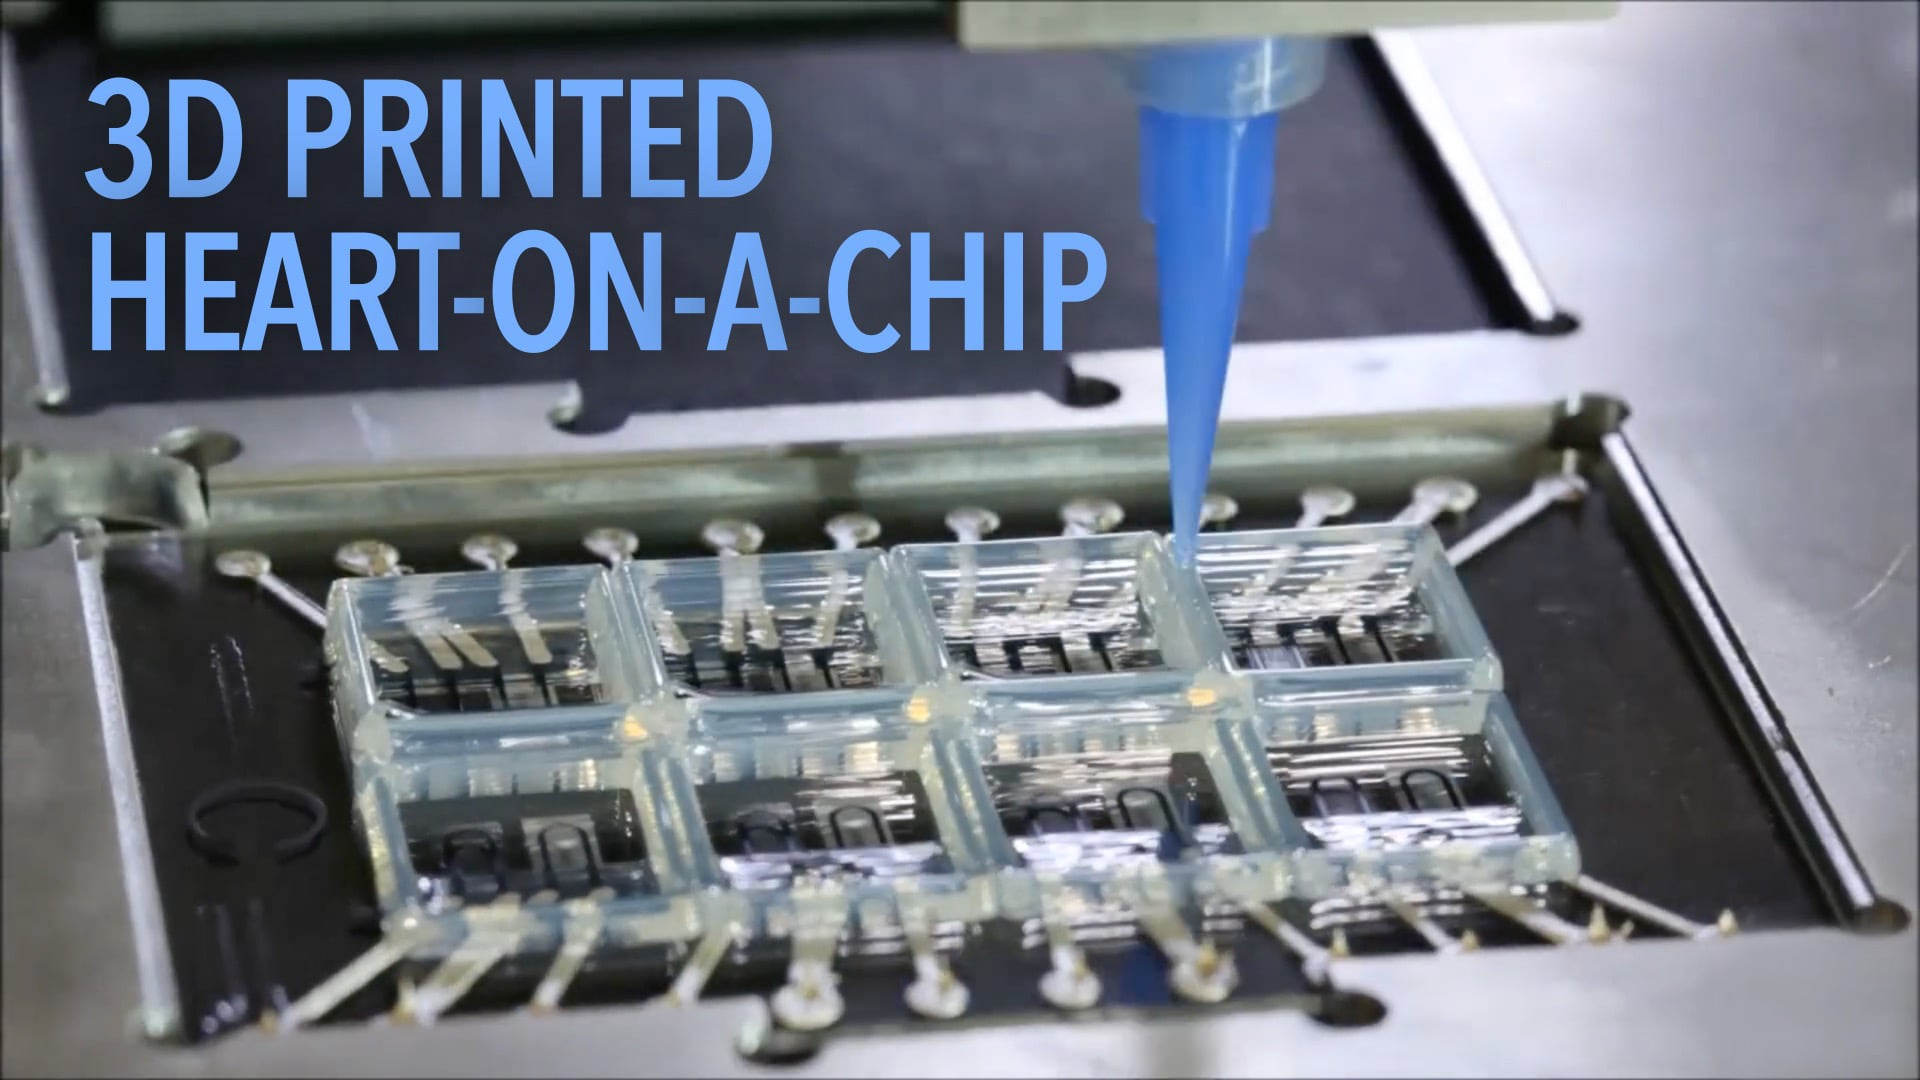 3D Printed Heart-on-a-Chip